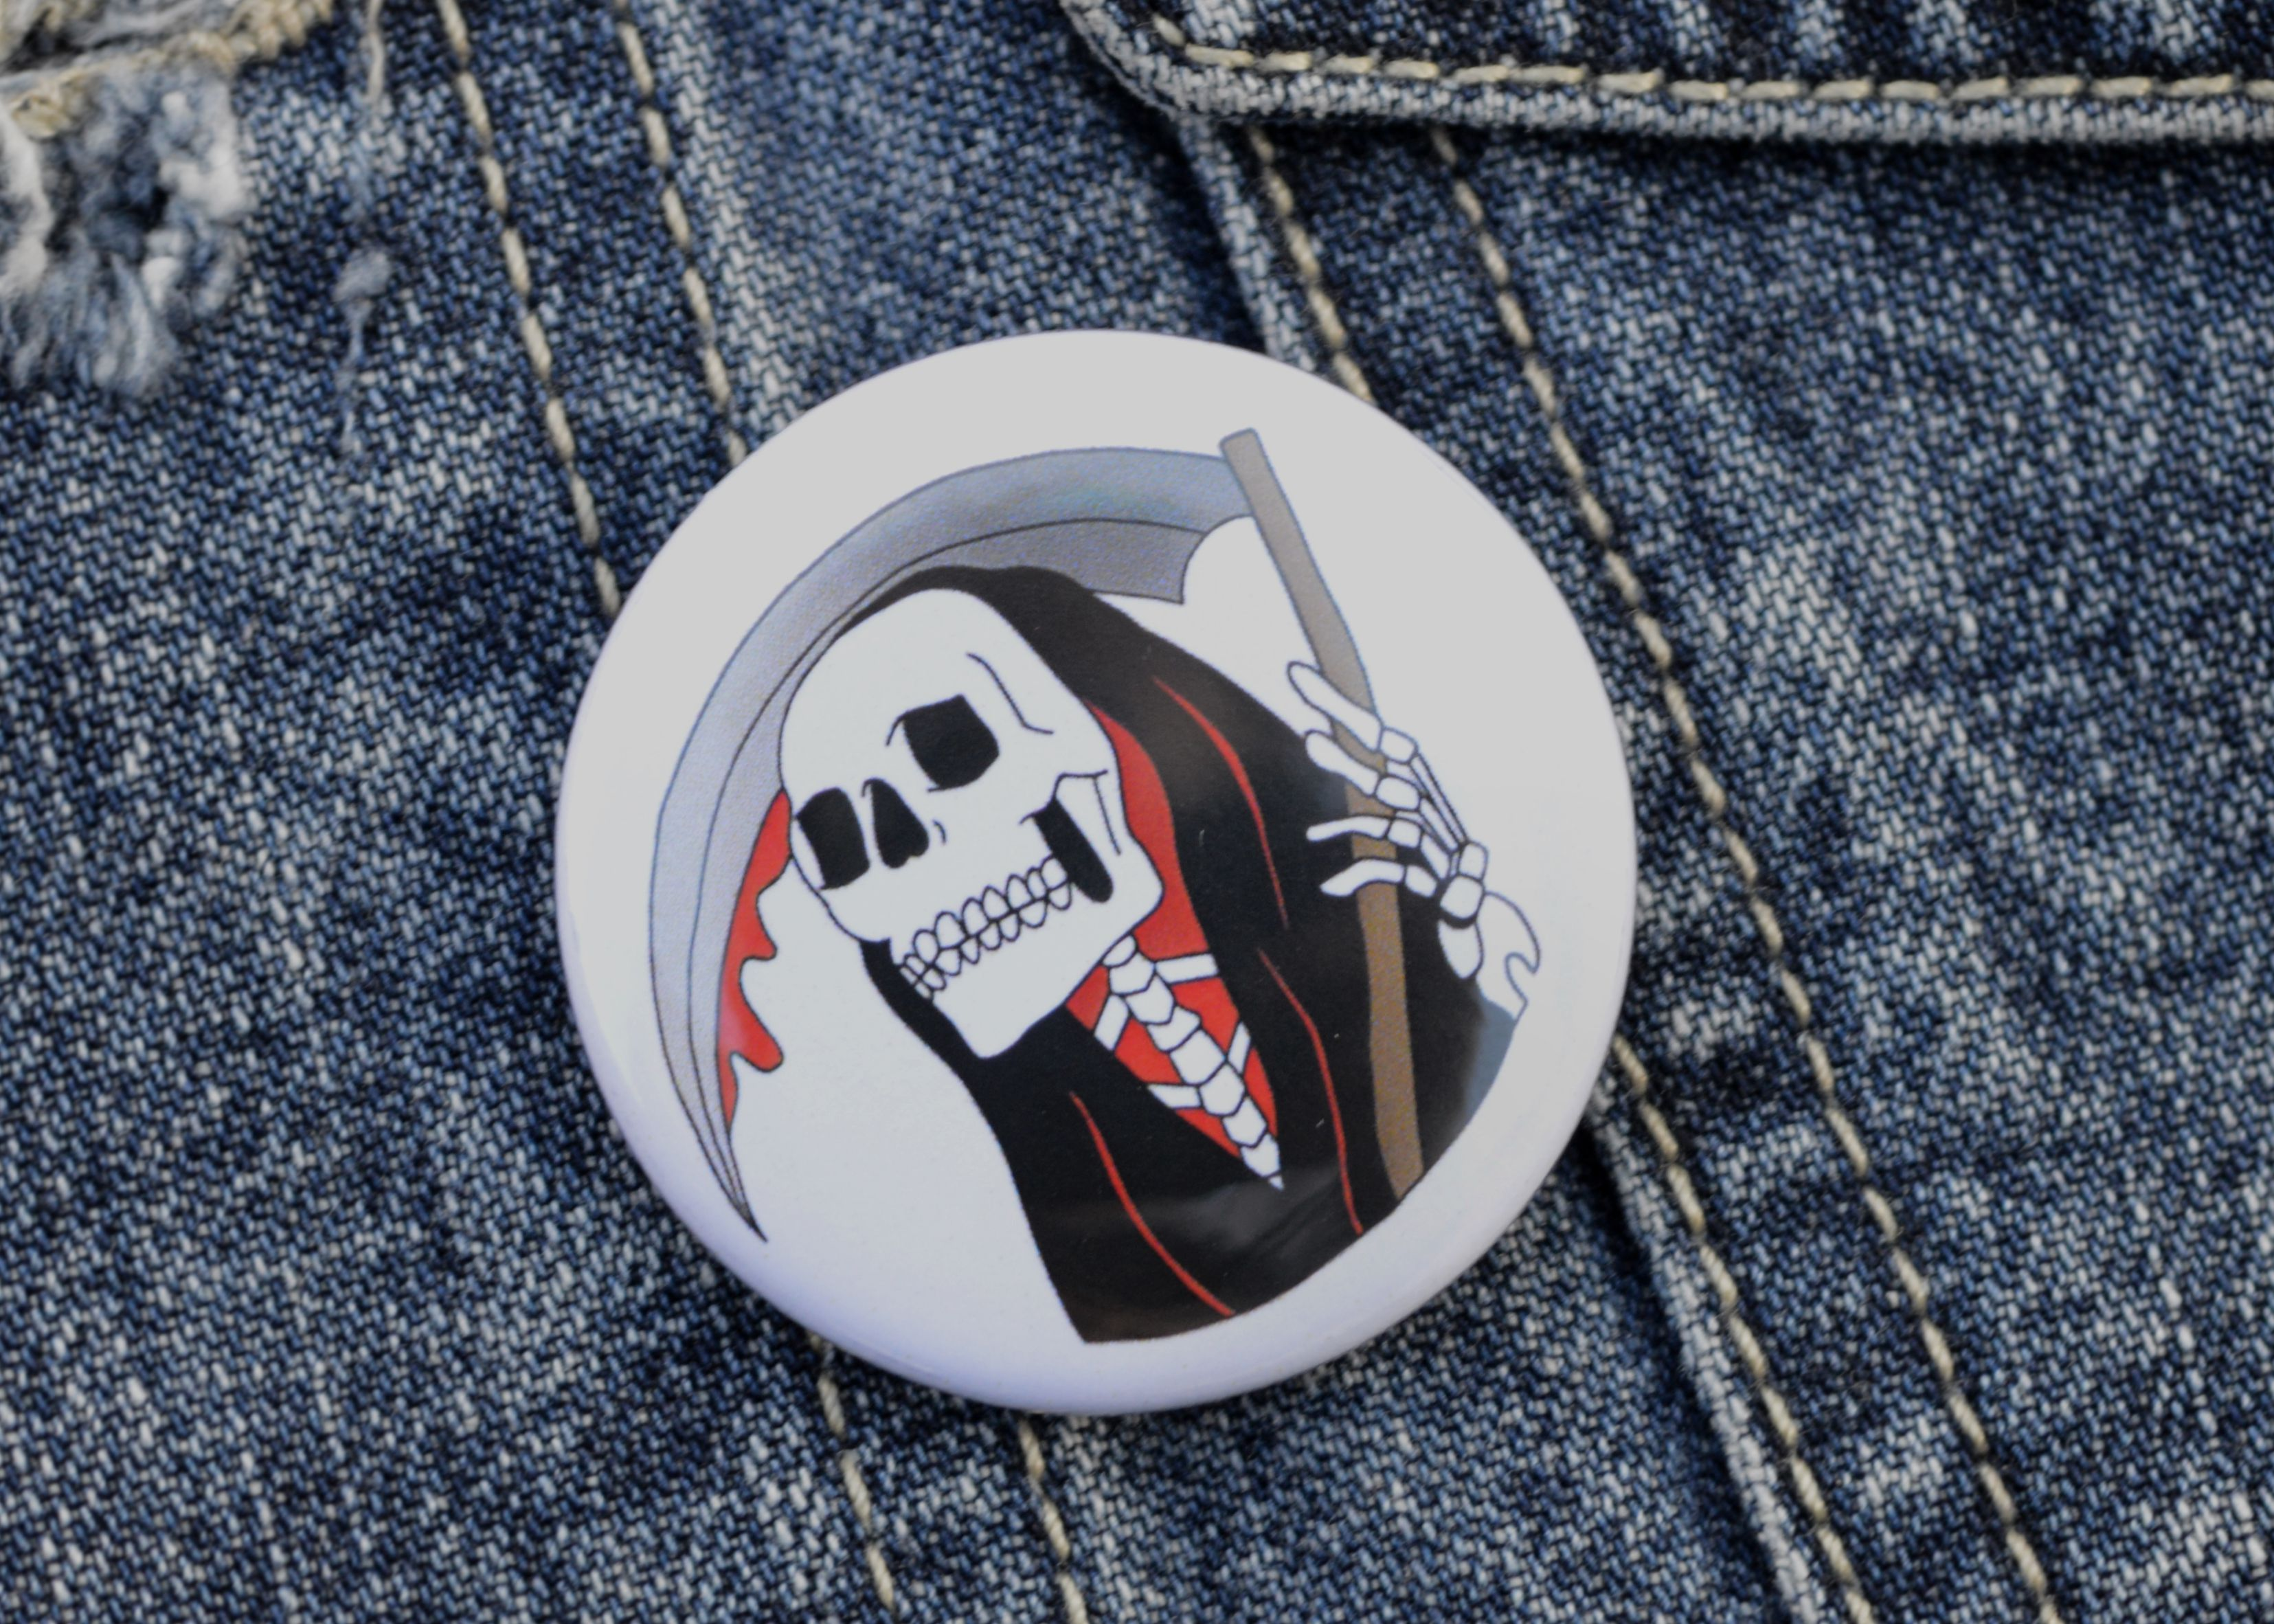 Halloween accessories gift pin tattooist grimreaper reaper grim handmade pinbadge badge alternative tattoo clothing art